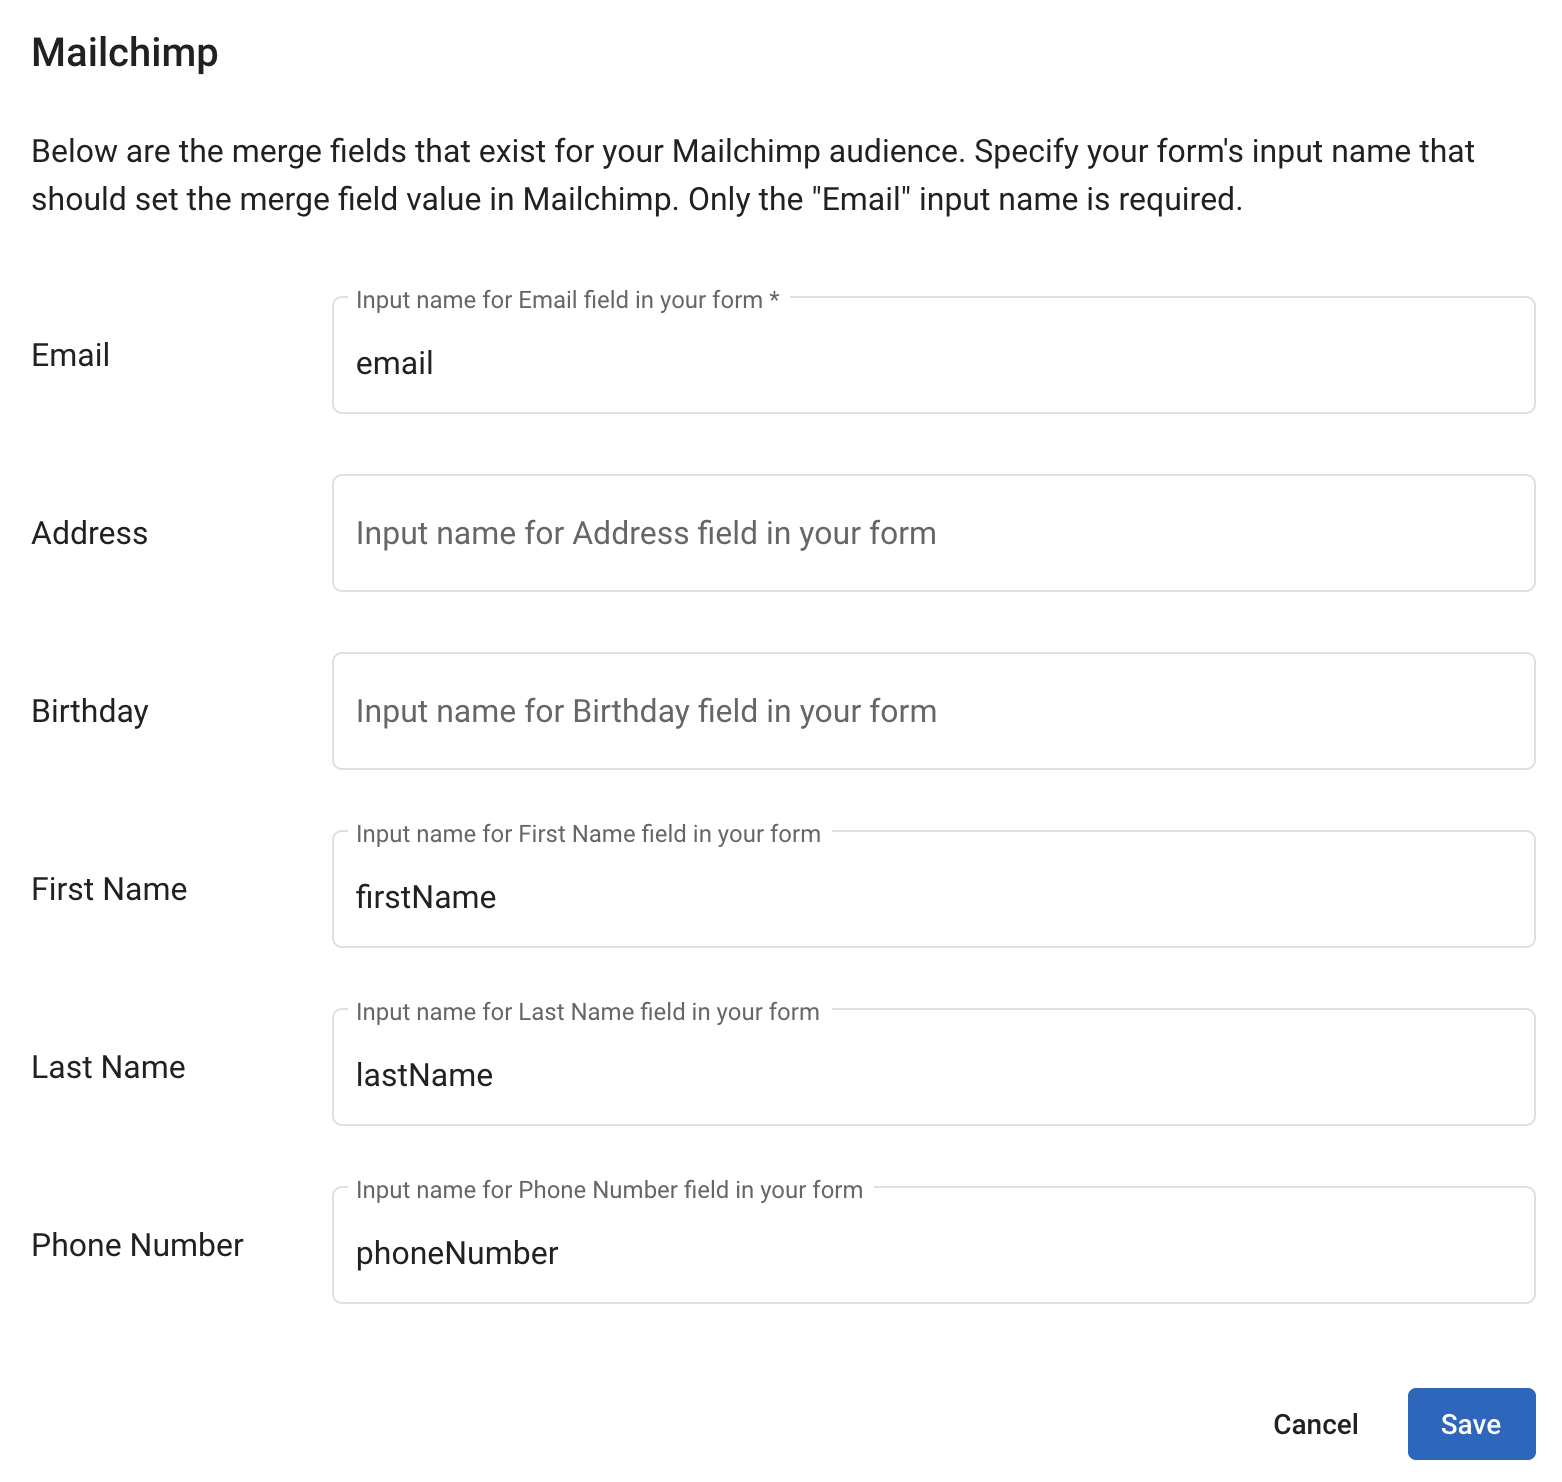 Mailchimp Field Mapping